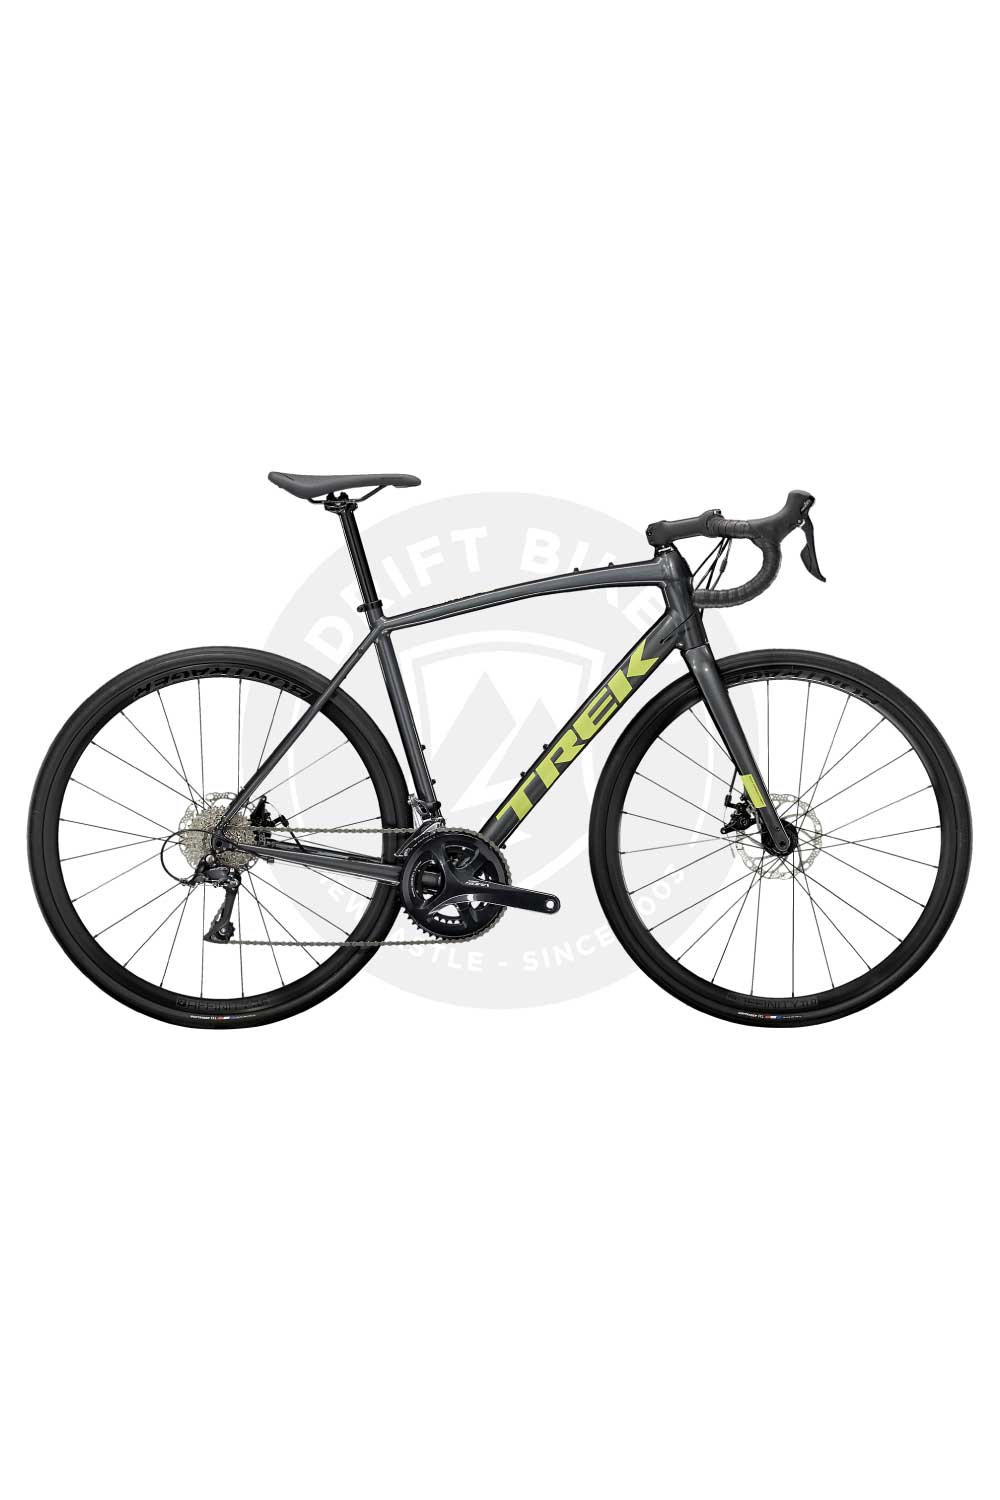 TREK 2021 Domane AL 3 Disc Road Bike